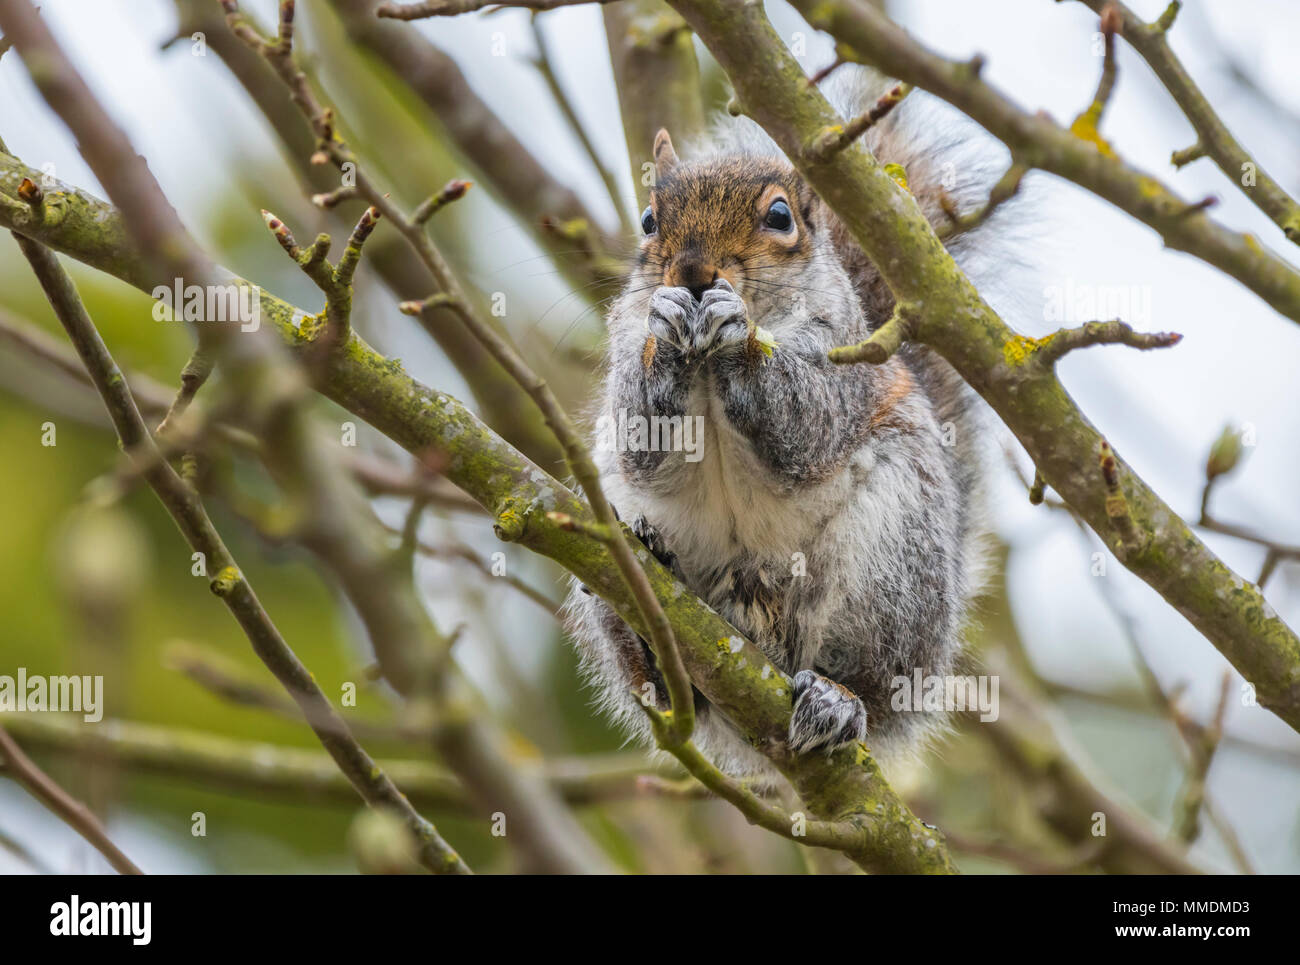 Eastern Grey Squirrel (Sciurus carolinensis) sitting in a tree eating a nut in Spring in West Sussex, England, UK. Eastern Gray Squirrel. - Stock Image